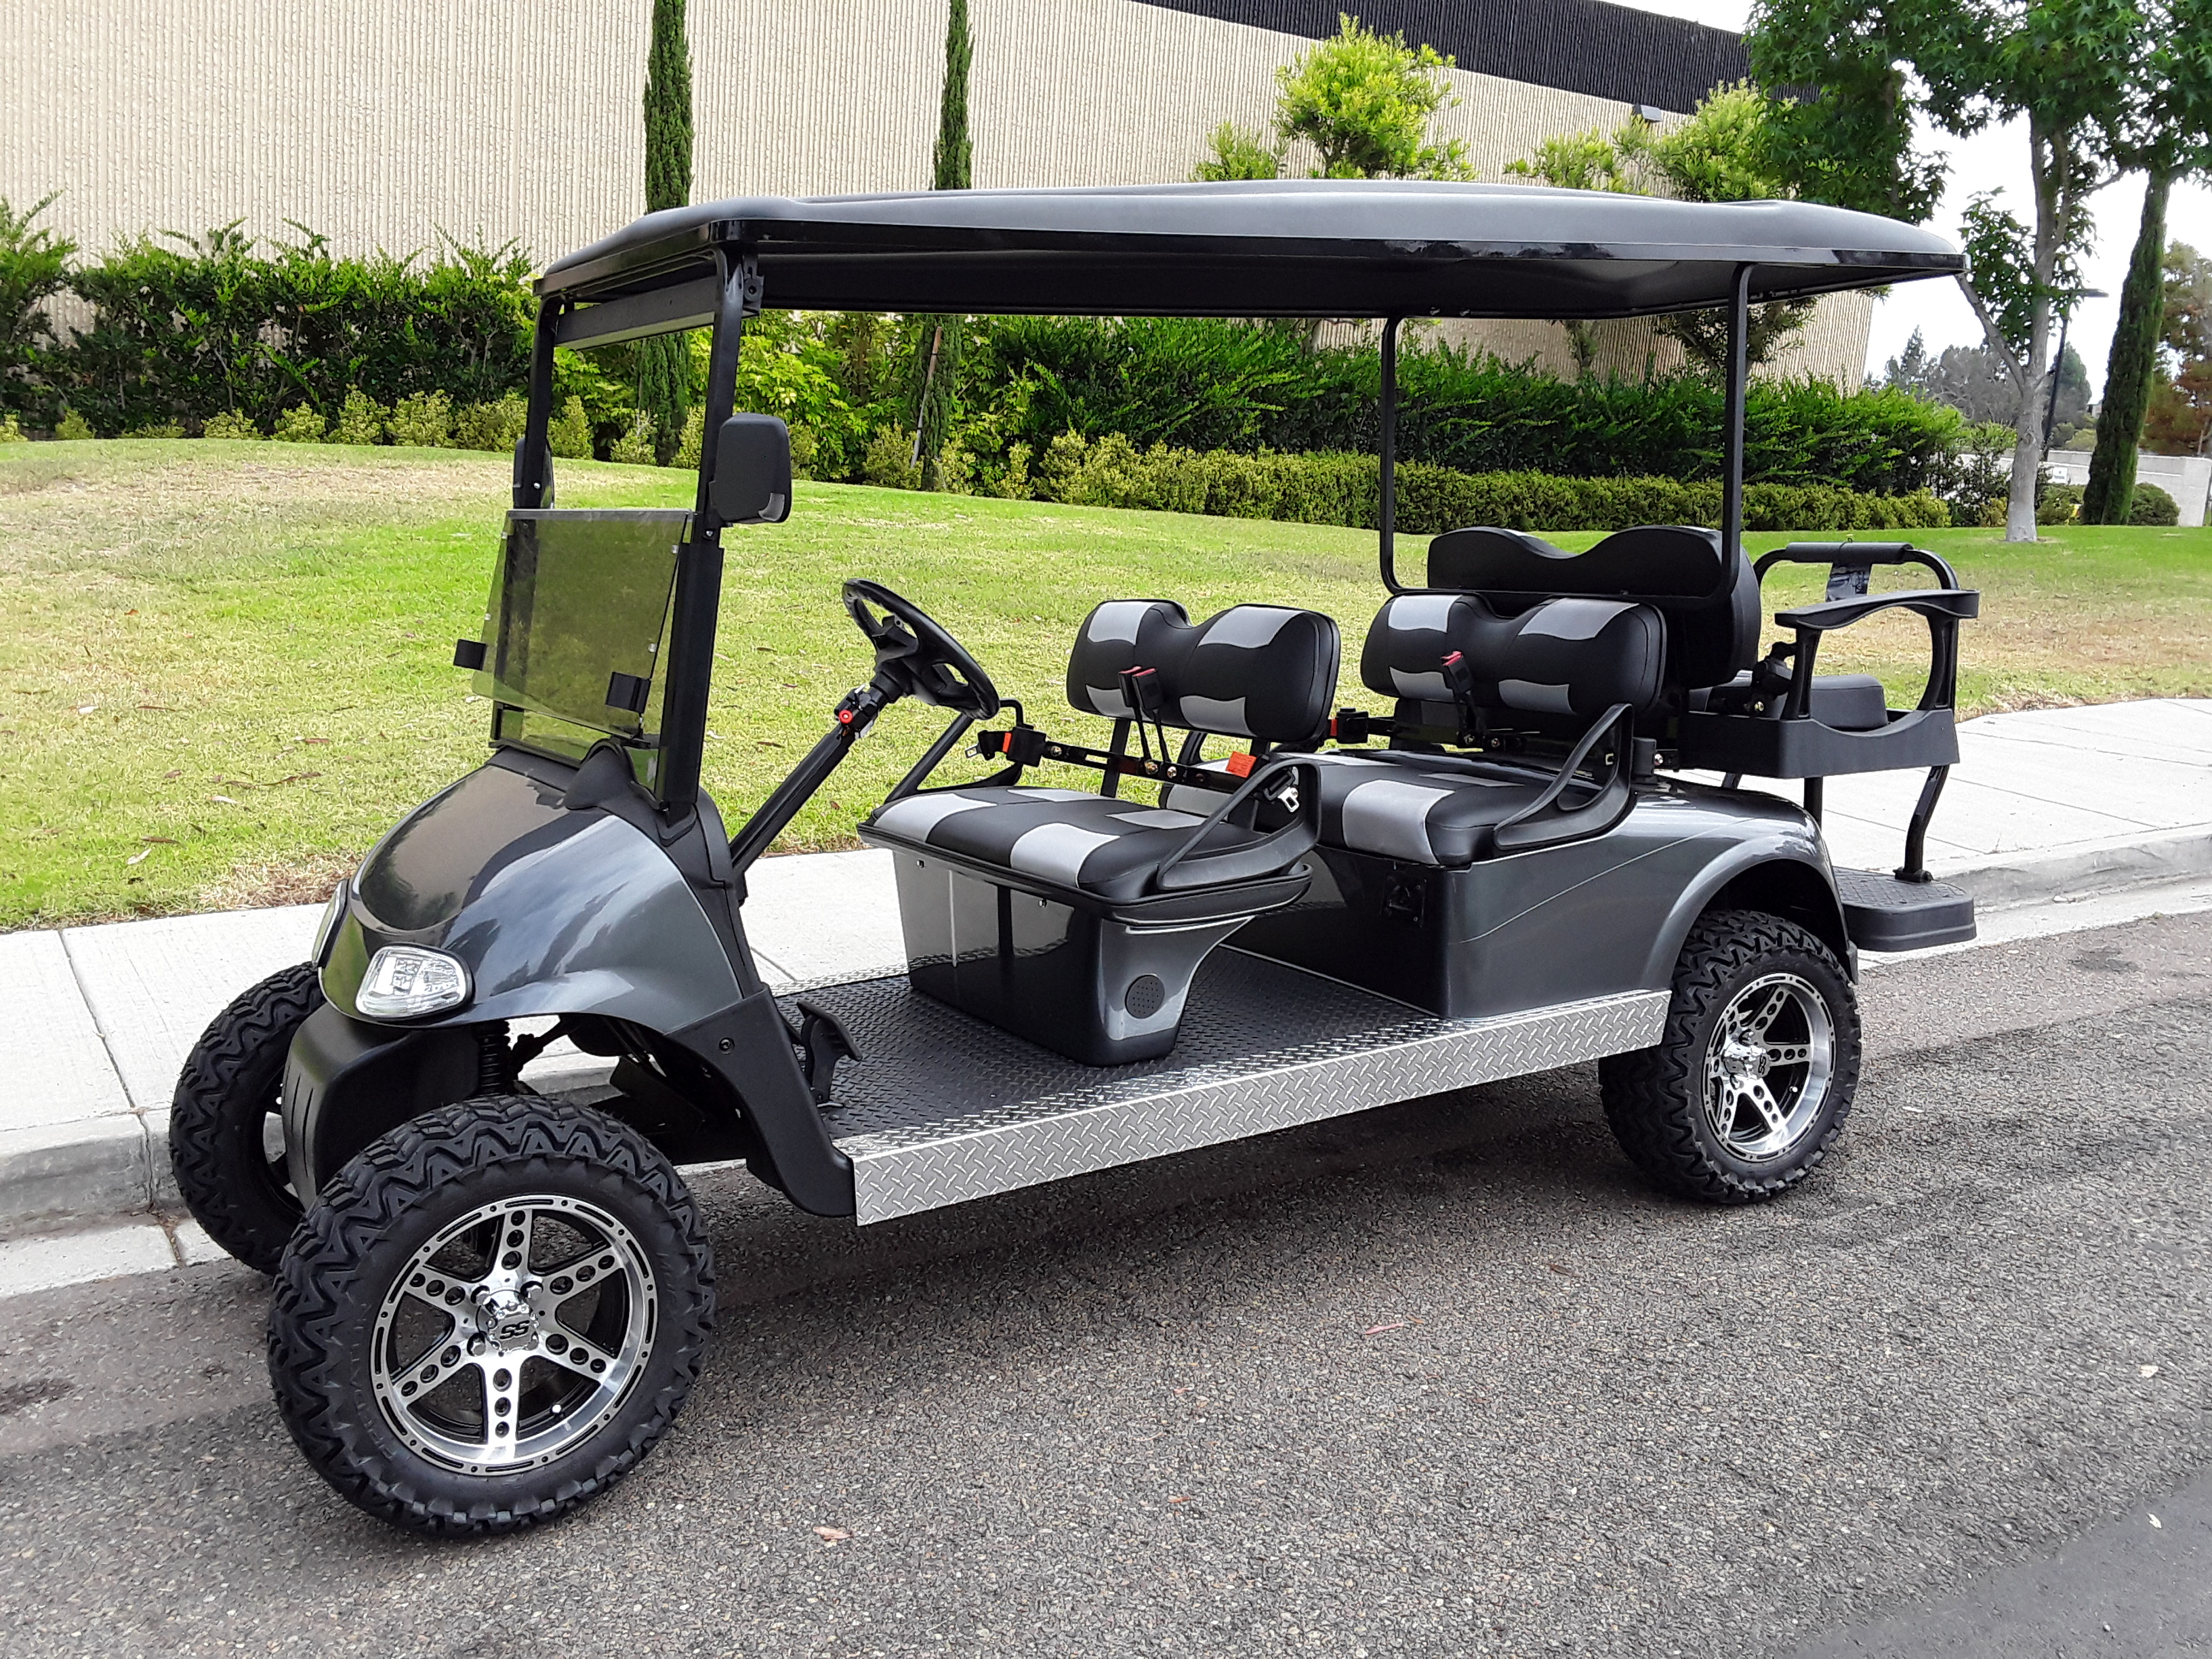 6 Passenger Golf Cart Rxv